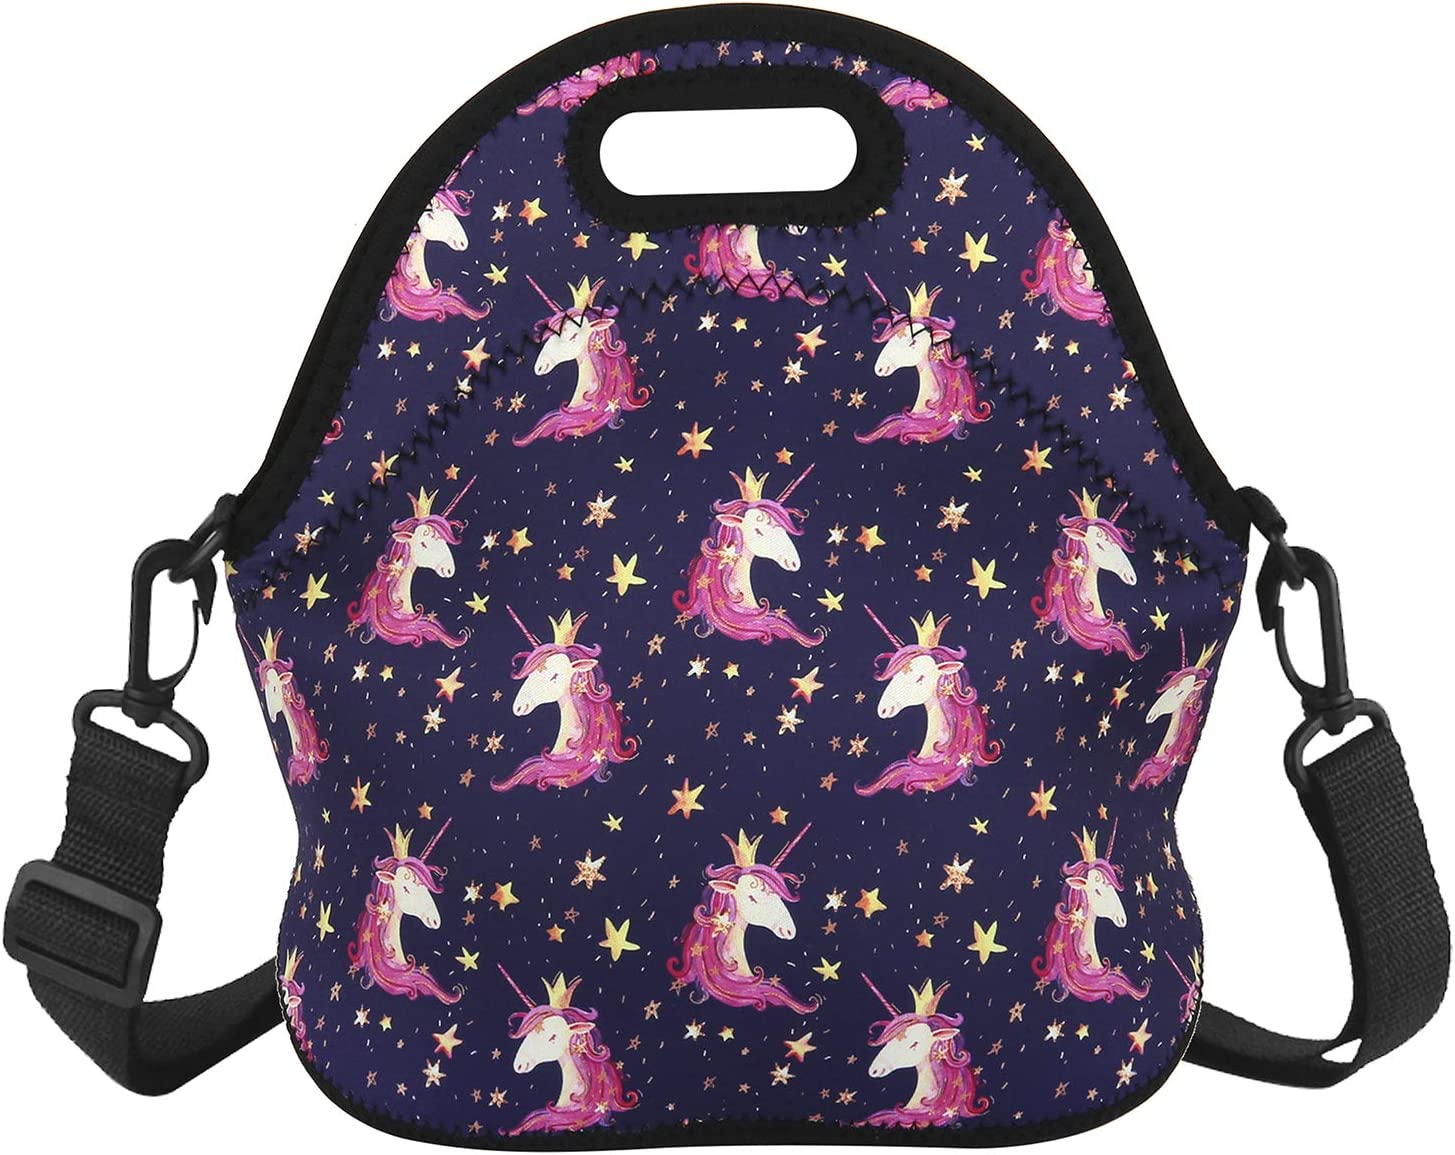 Unicorn Lunch Bag with Adjustable Strap Milwaukee Mall Tampa Mall Tote Foldable Waterproof